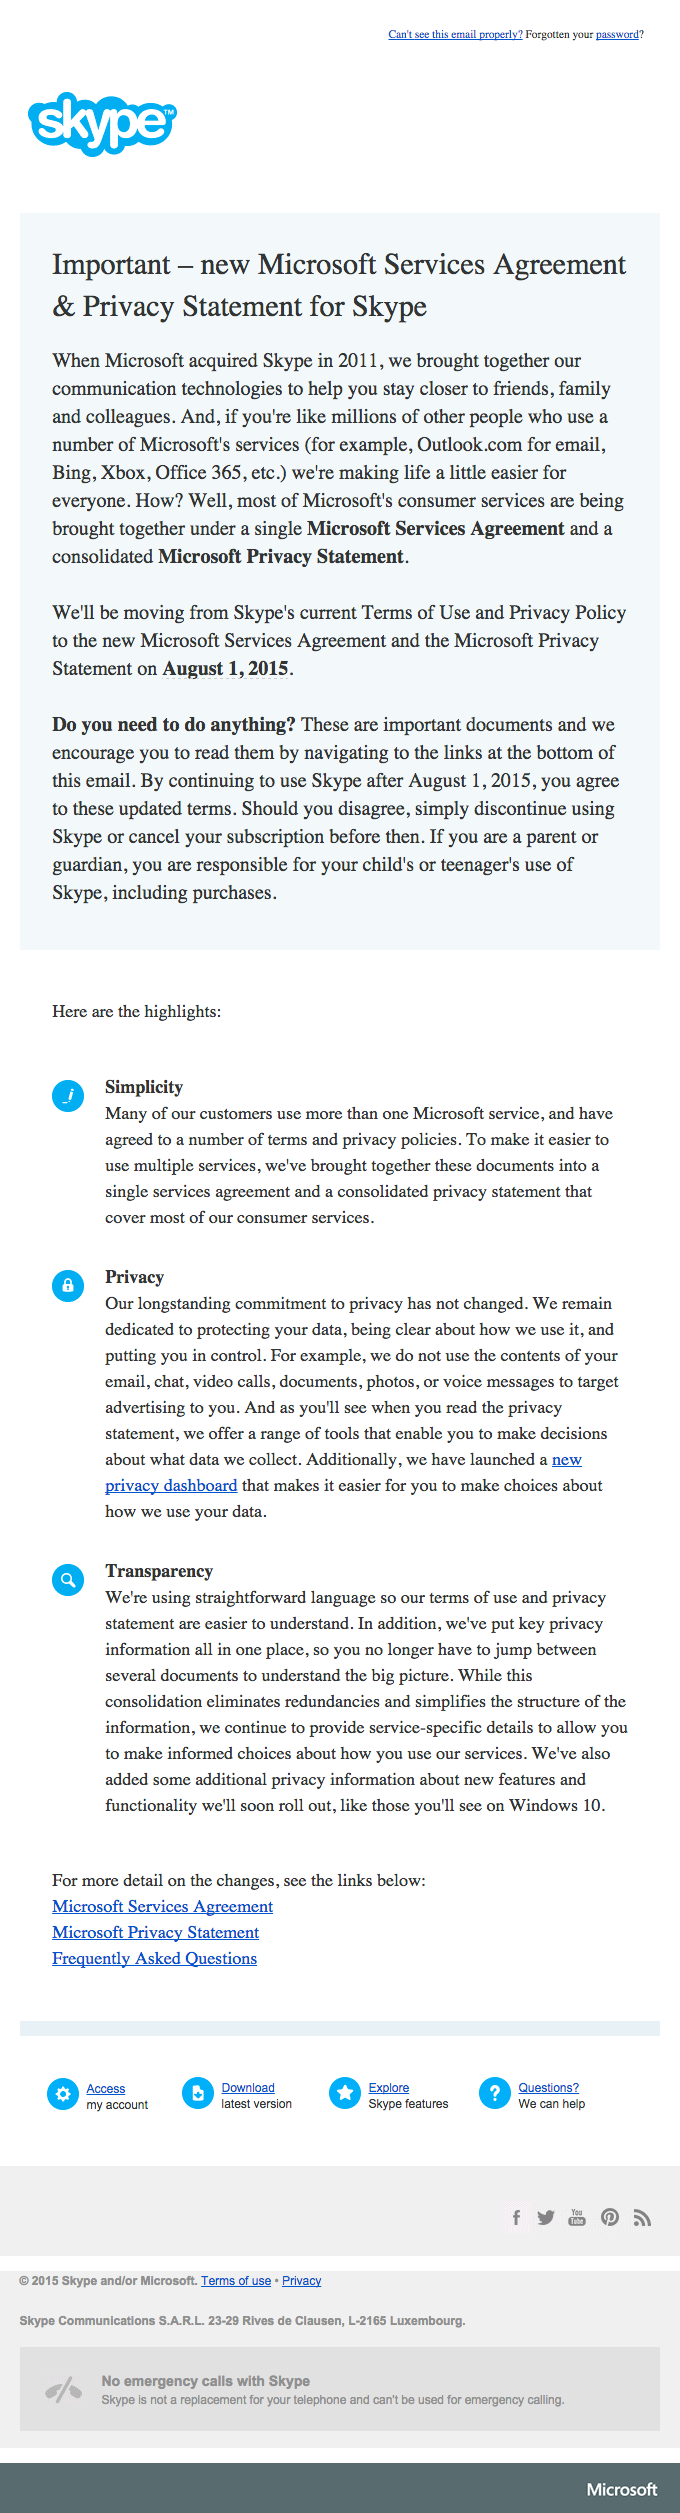 Important – new Microsoft Services Agreement & Privacy Statement for Skype